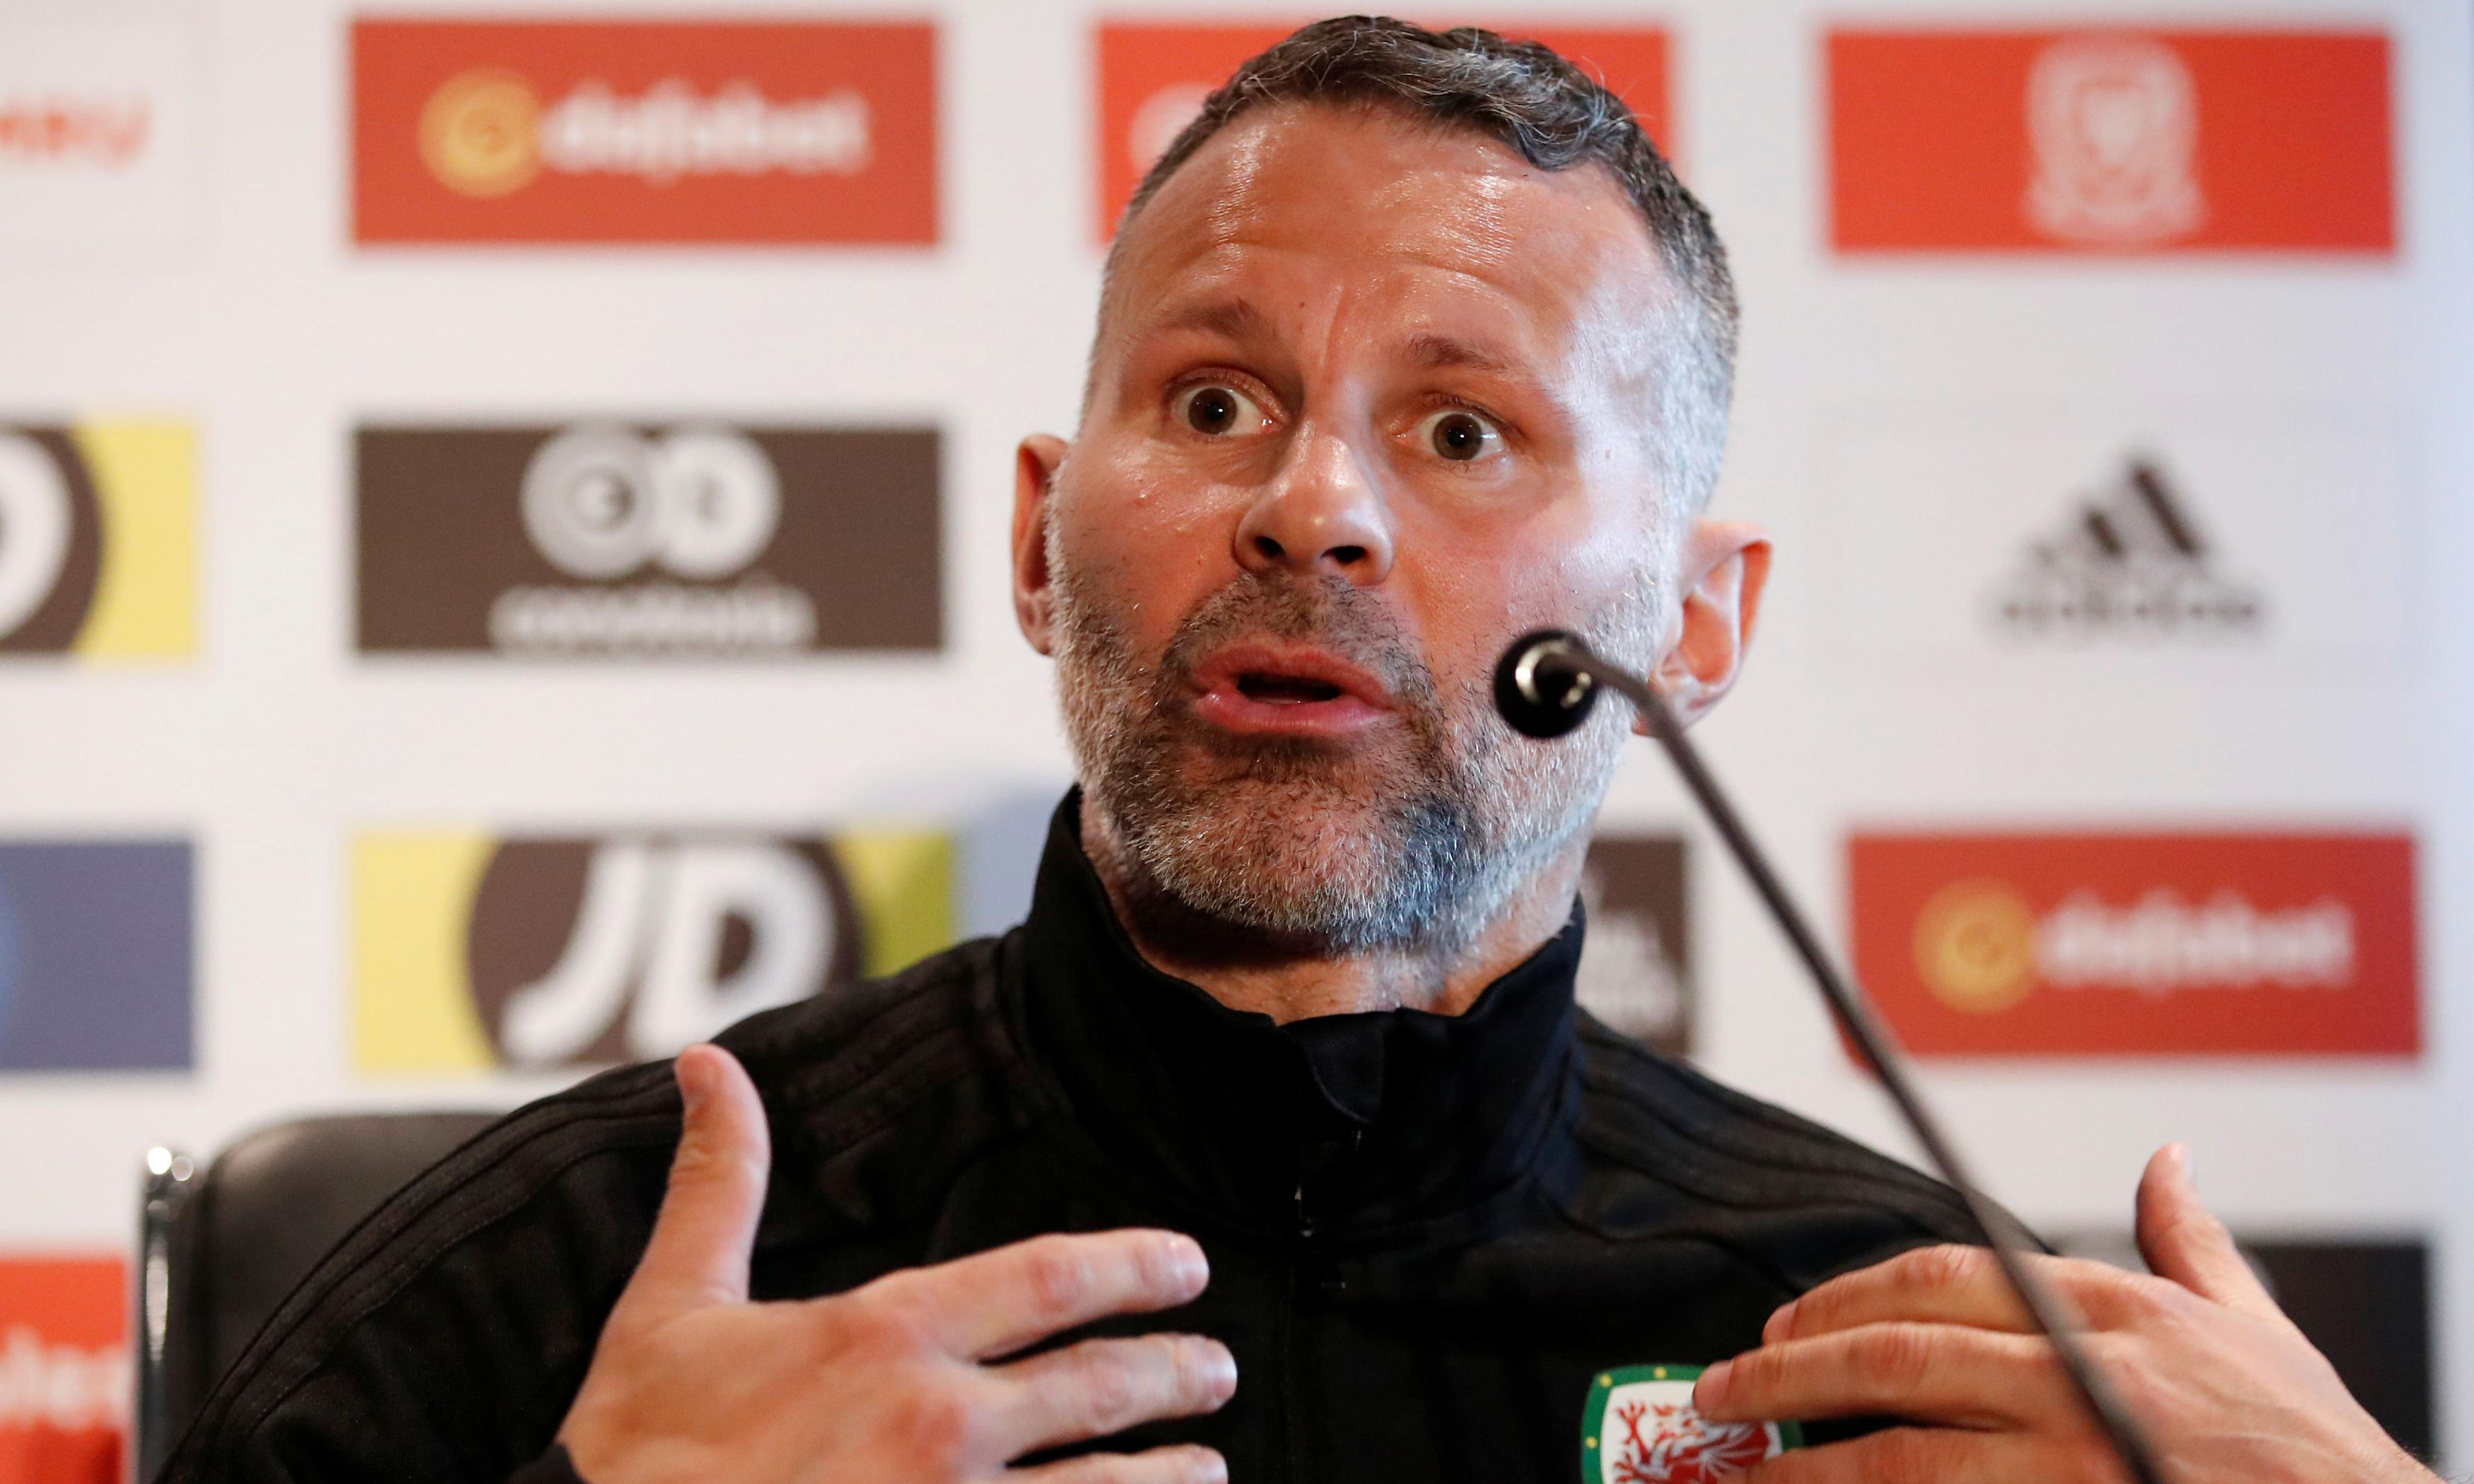 Ryan Giggs hits back at Zlatan Ibrahimovic over Class of 92 comments